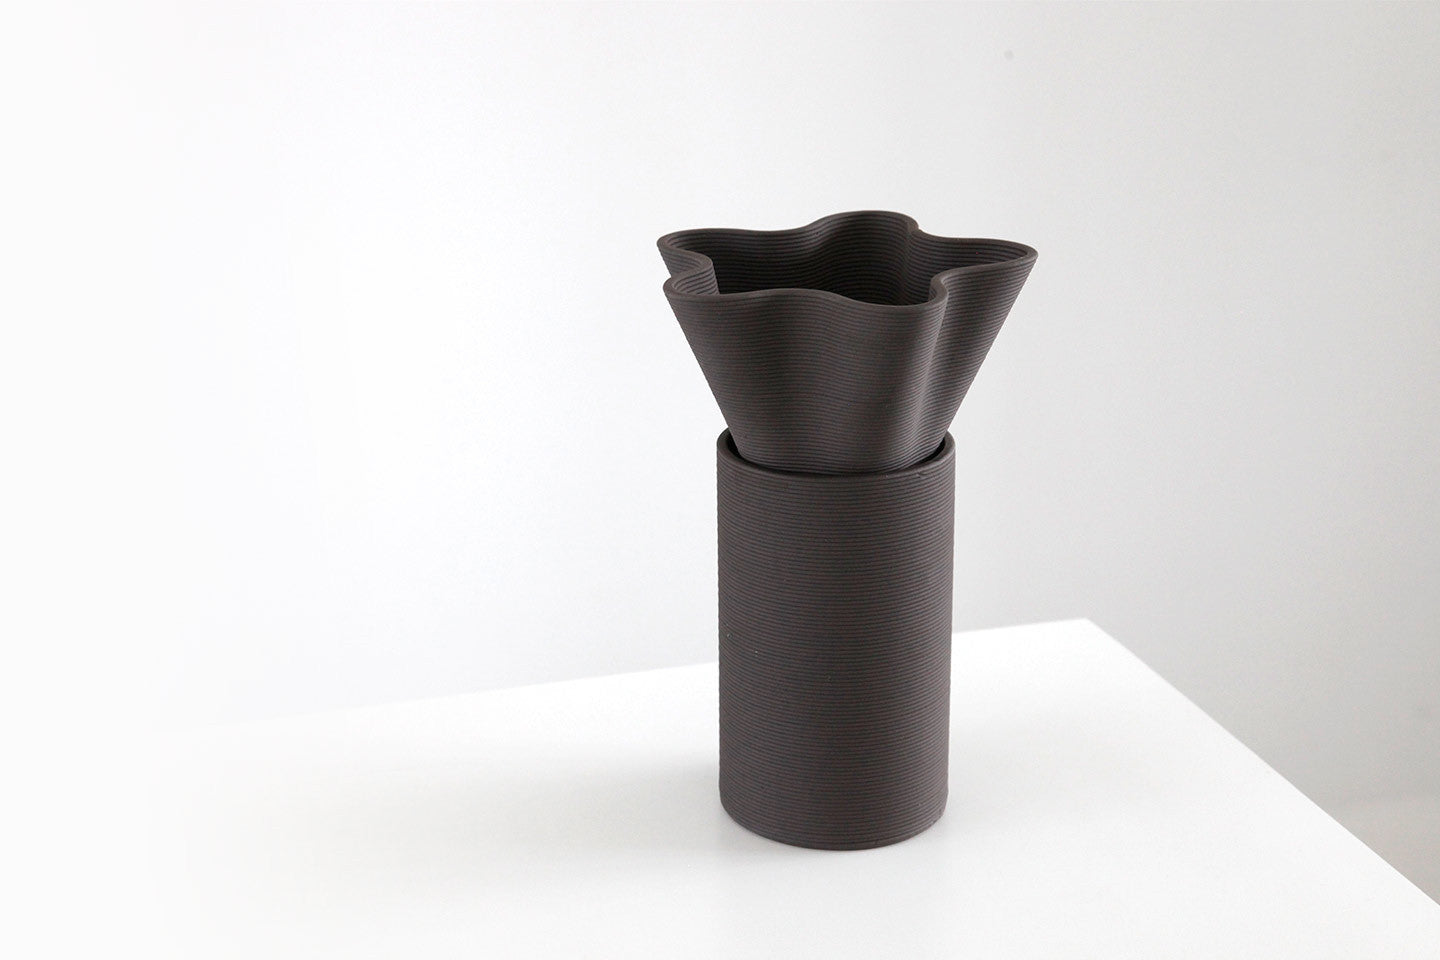 xprmnt vase set black YARN